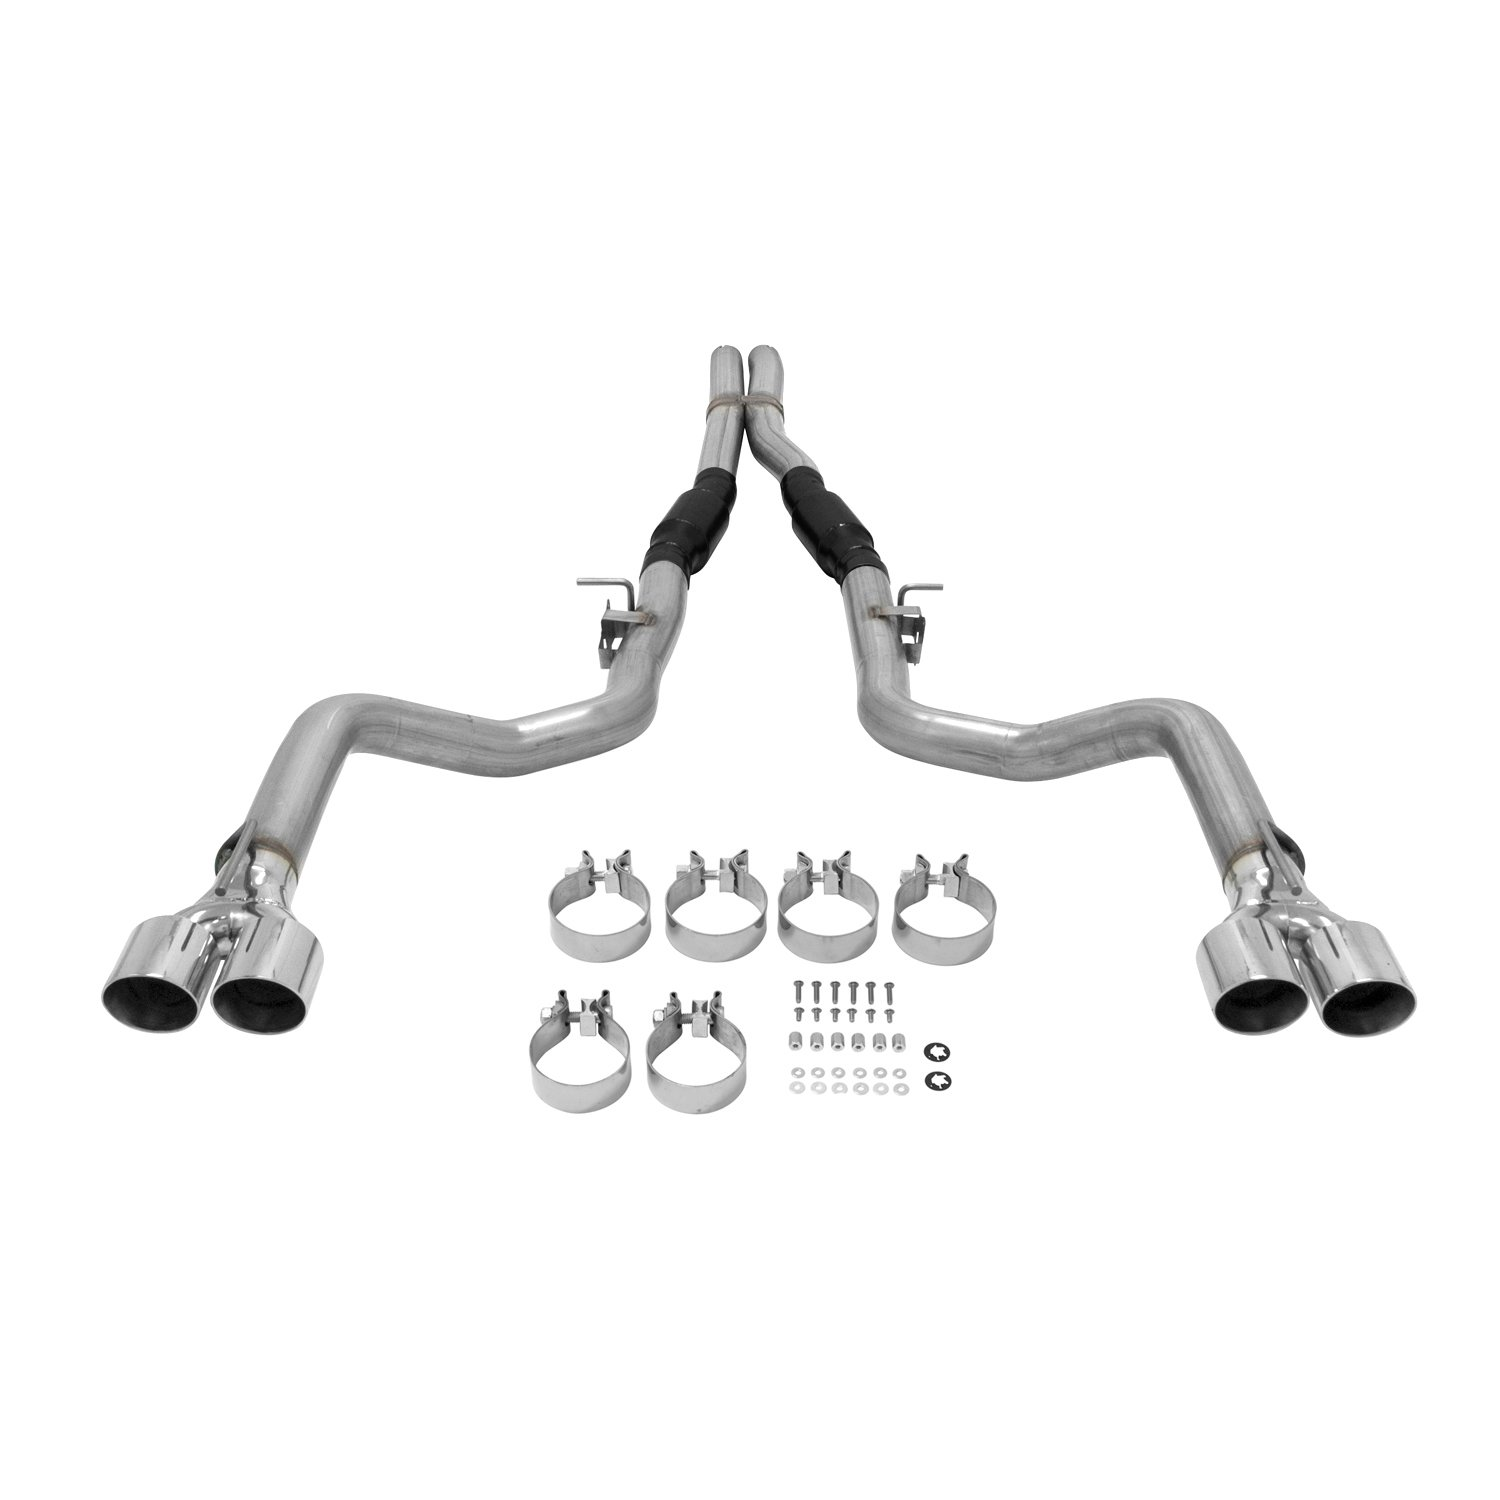 Flowmaster Flowmaster Outlaw Cat Back Exhaust System